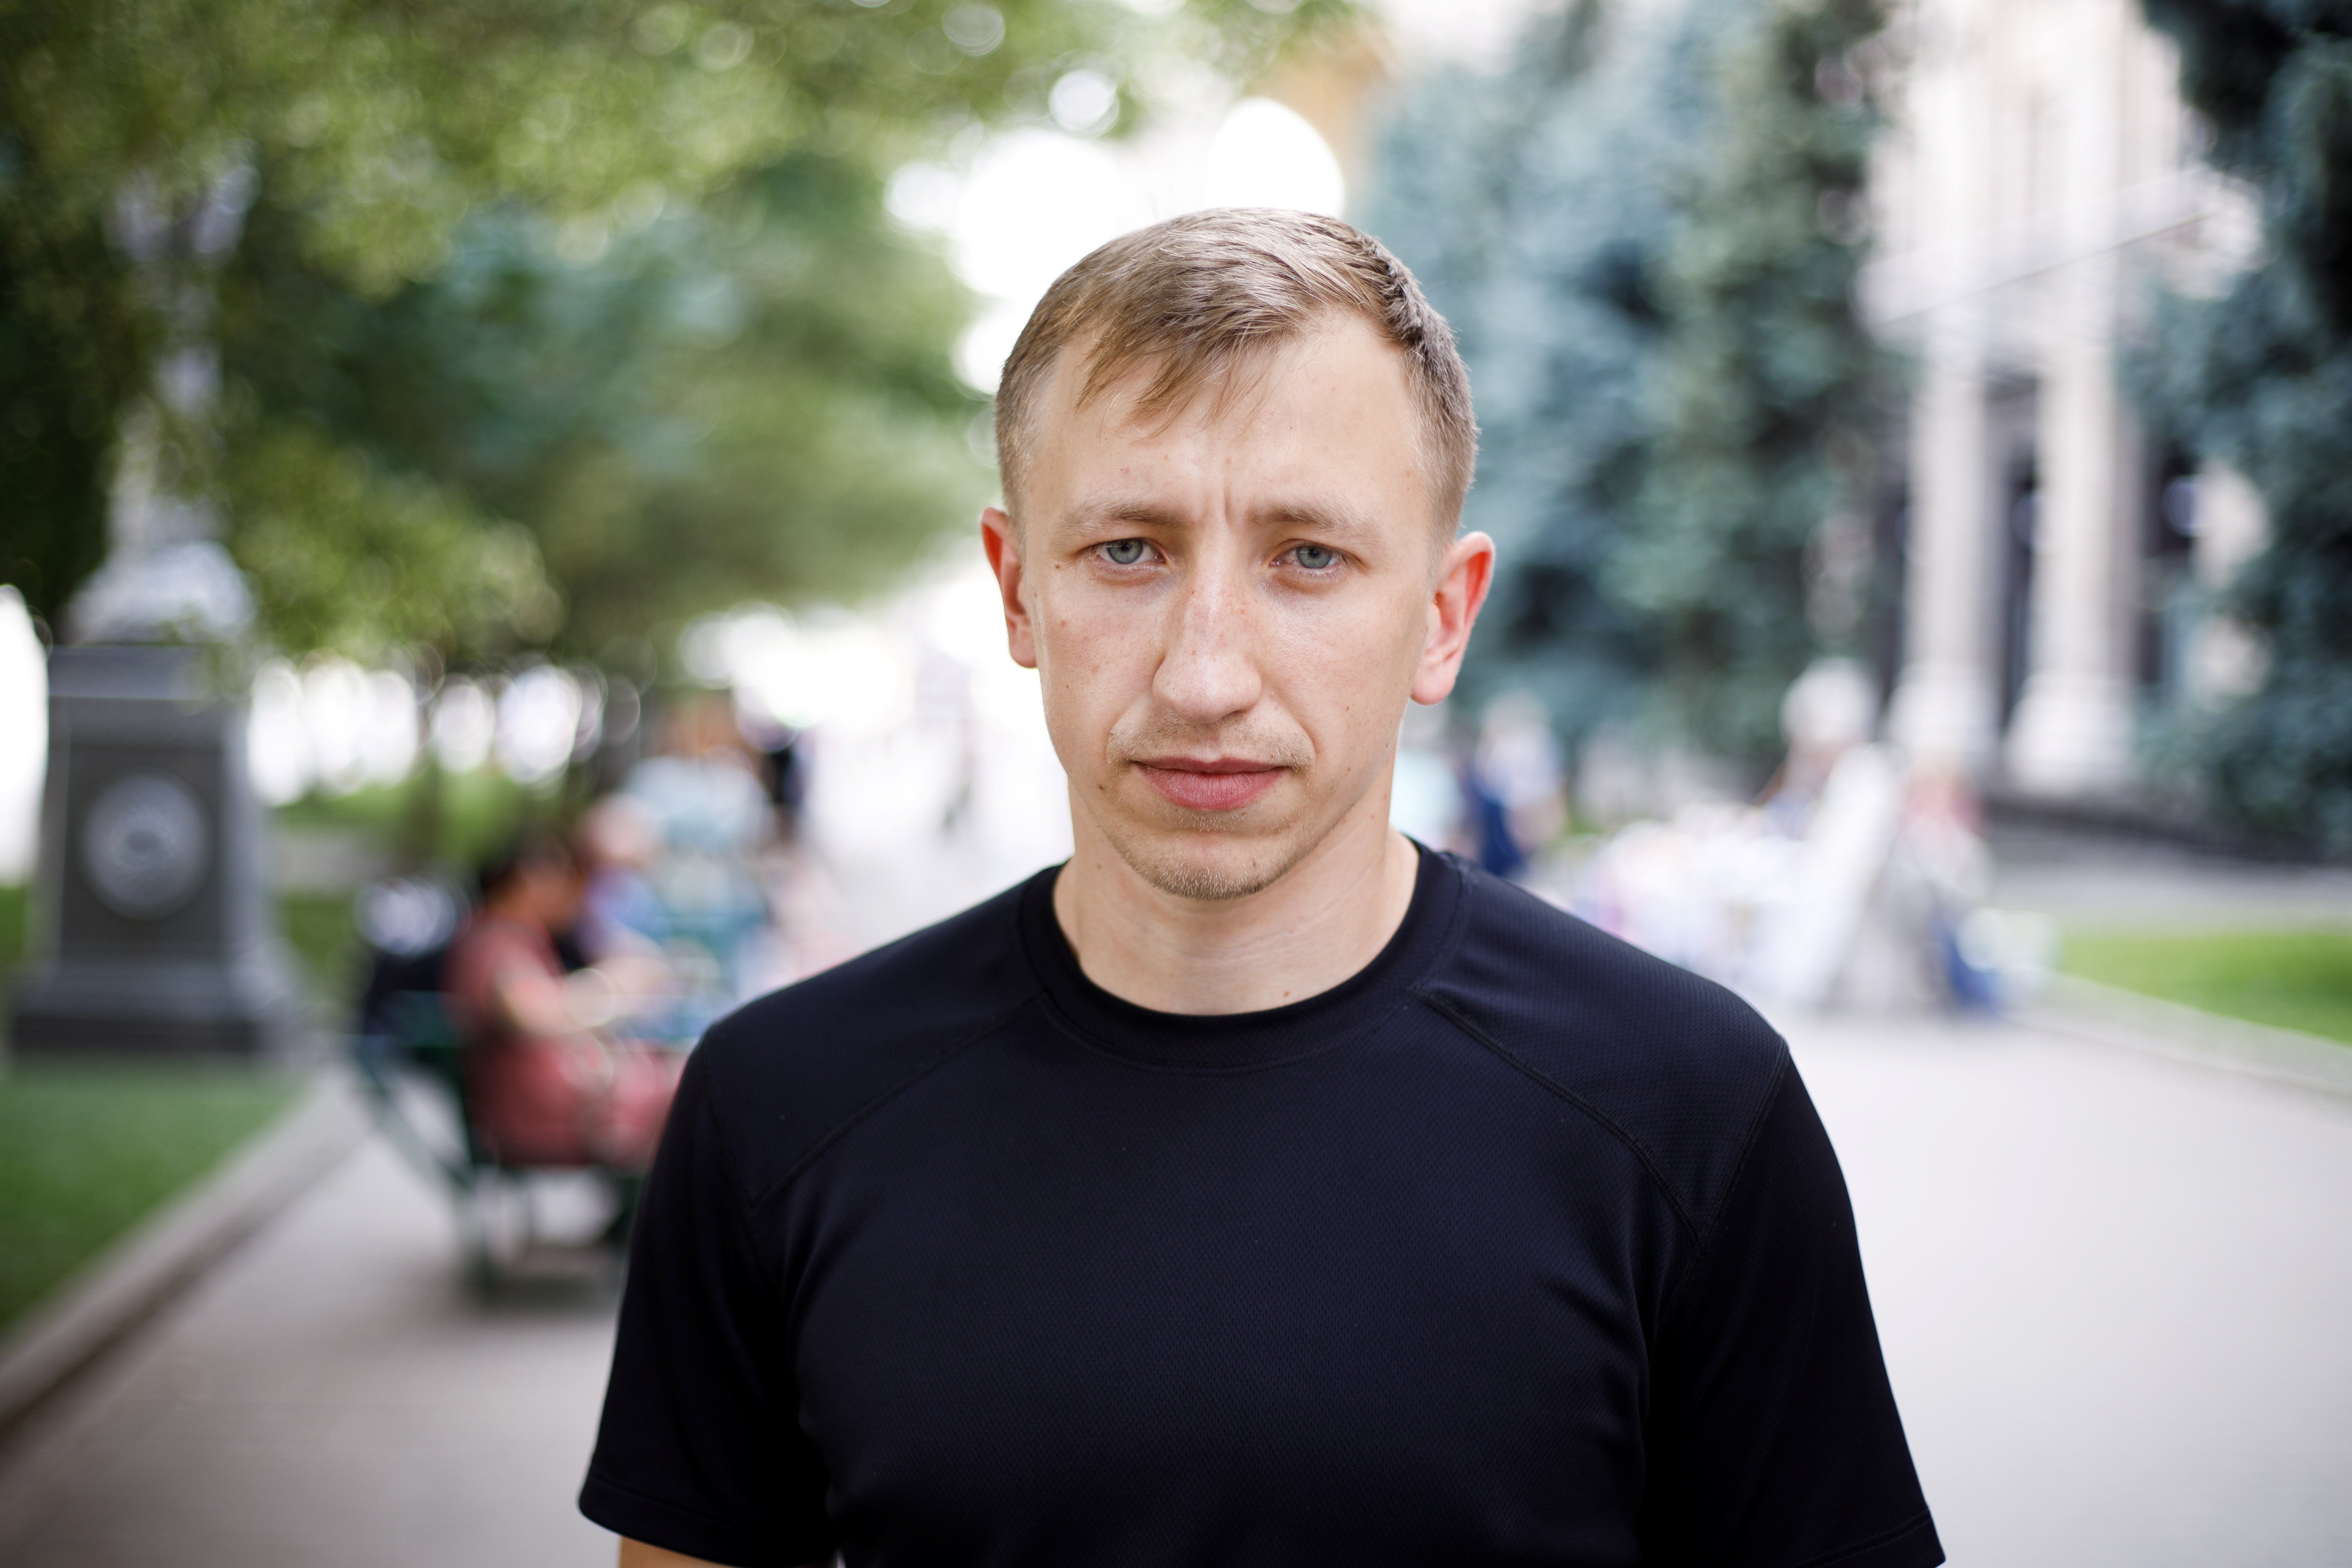 Vitaly Shishov, head of a Kyiv-based organisation that helps Belarusians fleeing persecution, is seen in Kyiv, Ukraine July 18, 2021. Picture taken July 18, 2021.  RBC-Ukraine/Handout via REUTERS ATTENTION EDITORS - THIS IMAGE WAS PROVIDED BY A THIRD PARTY.